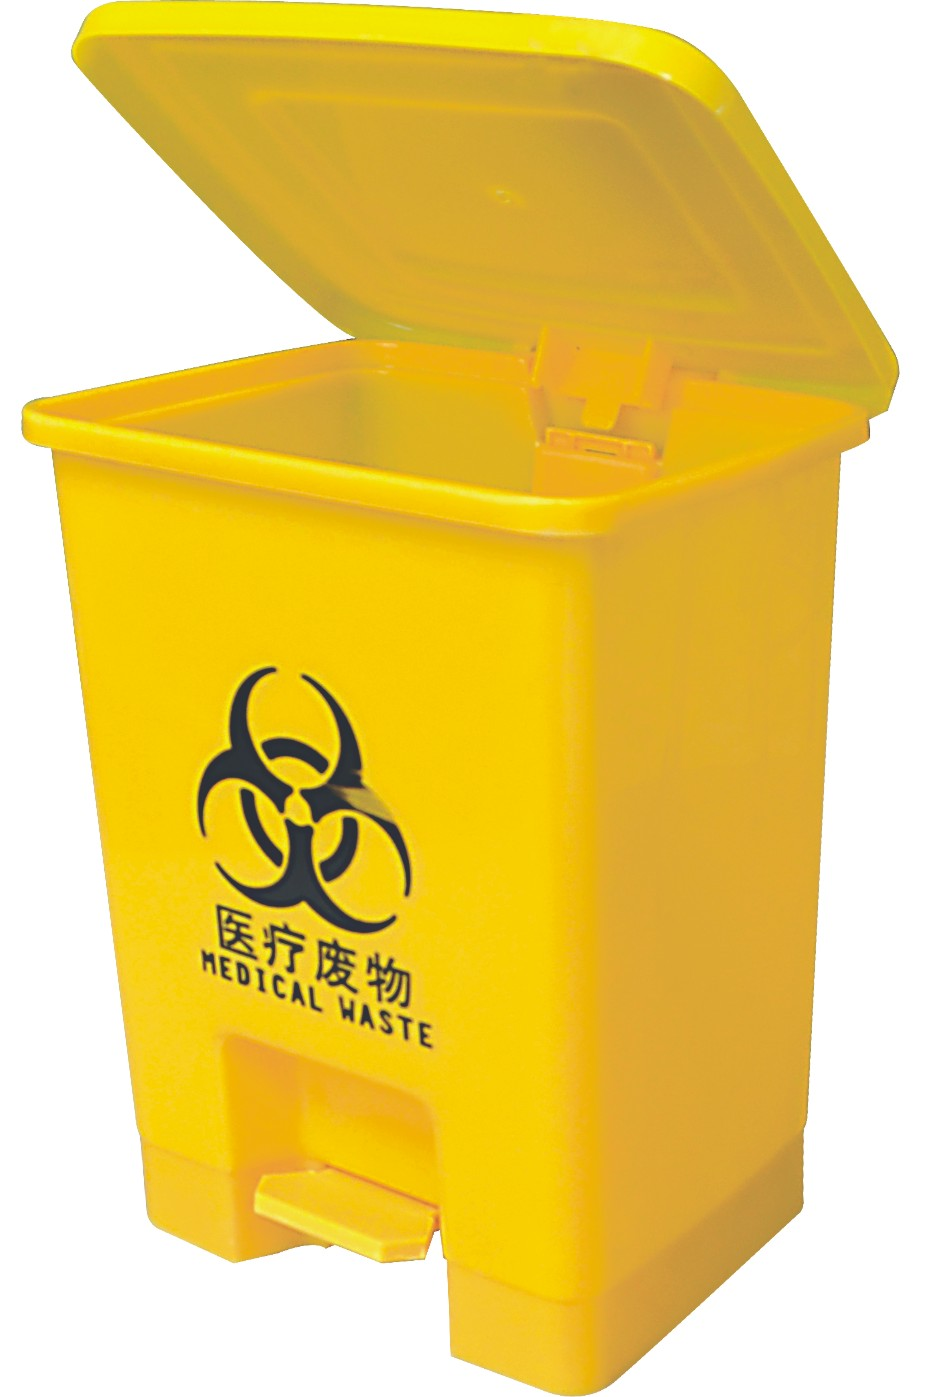 15L pedal waste container/plastic medical dustbin/plastic hospital dustbin